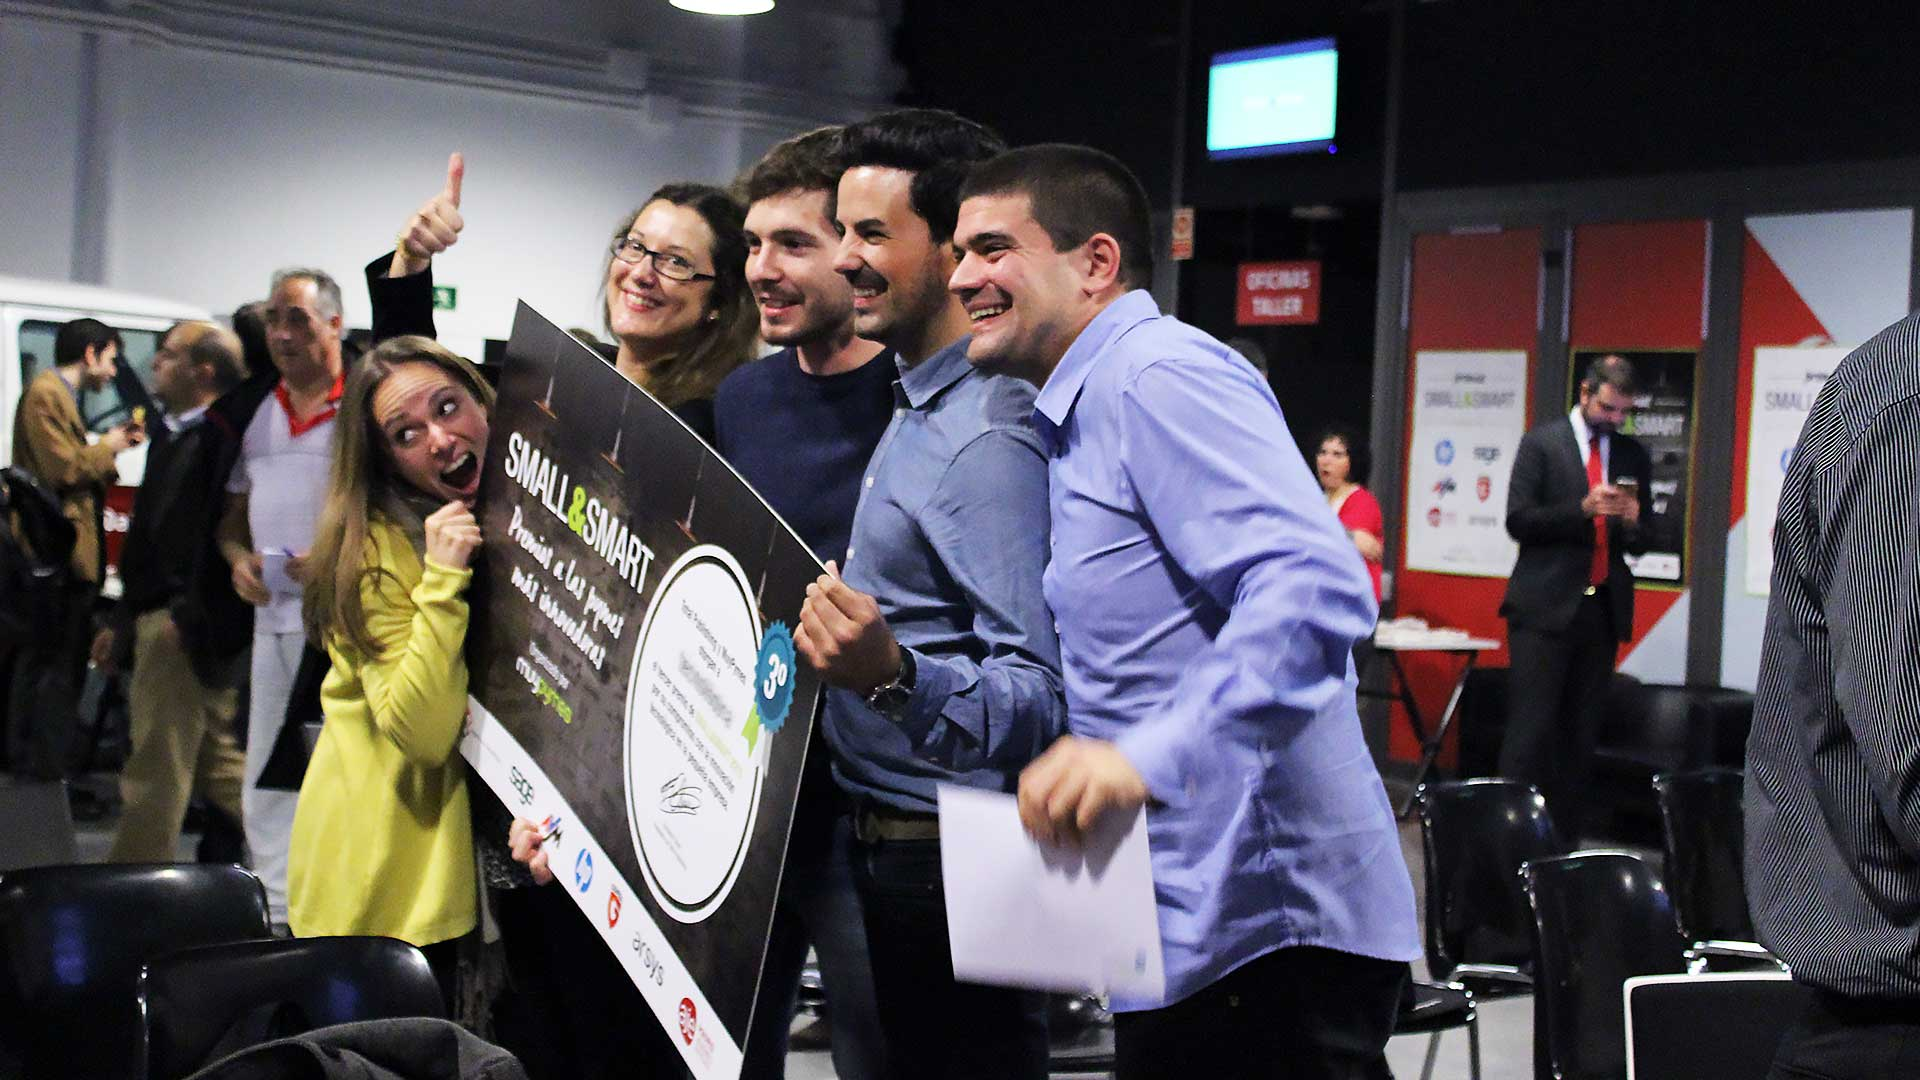 smallsmart-premios-startups-pymes-2015-cocktail-1